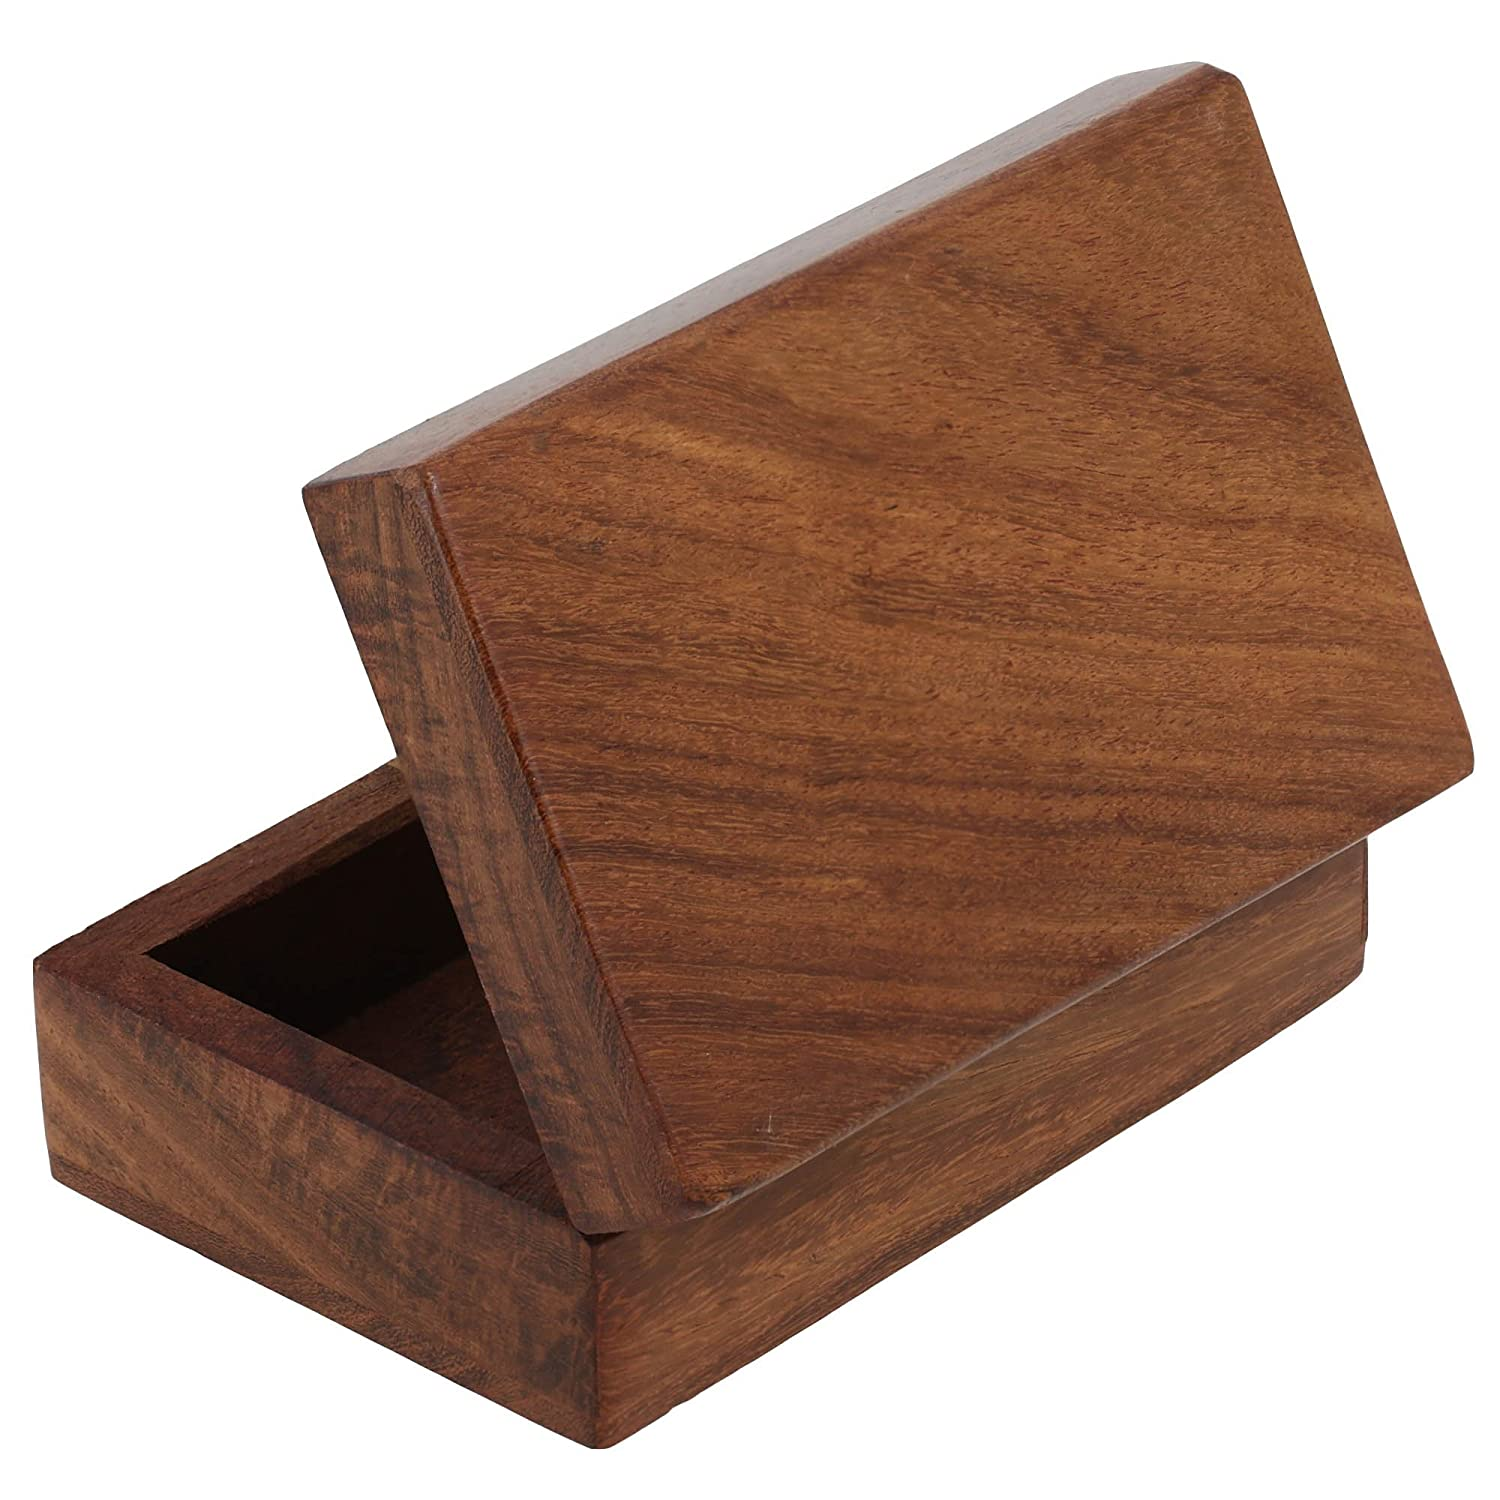 da7b943c5 Amazon.com: Artncraft Wooden Trinket Jewelry Box, Sleek and Simple Gift for  Women, 4 X 2.5 X 1.5 Inches: ShalinCraft: Home & Kitchen